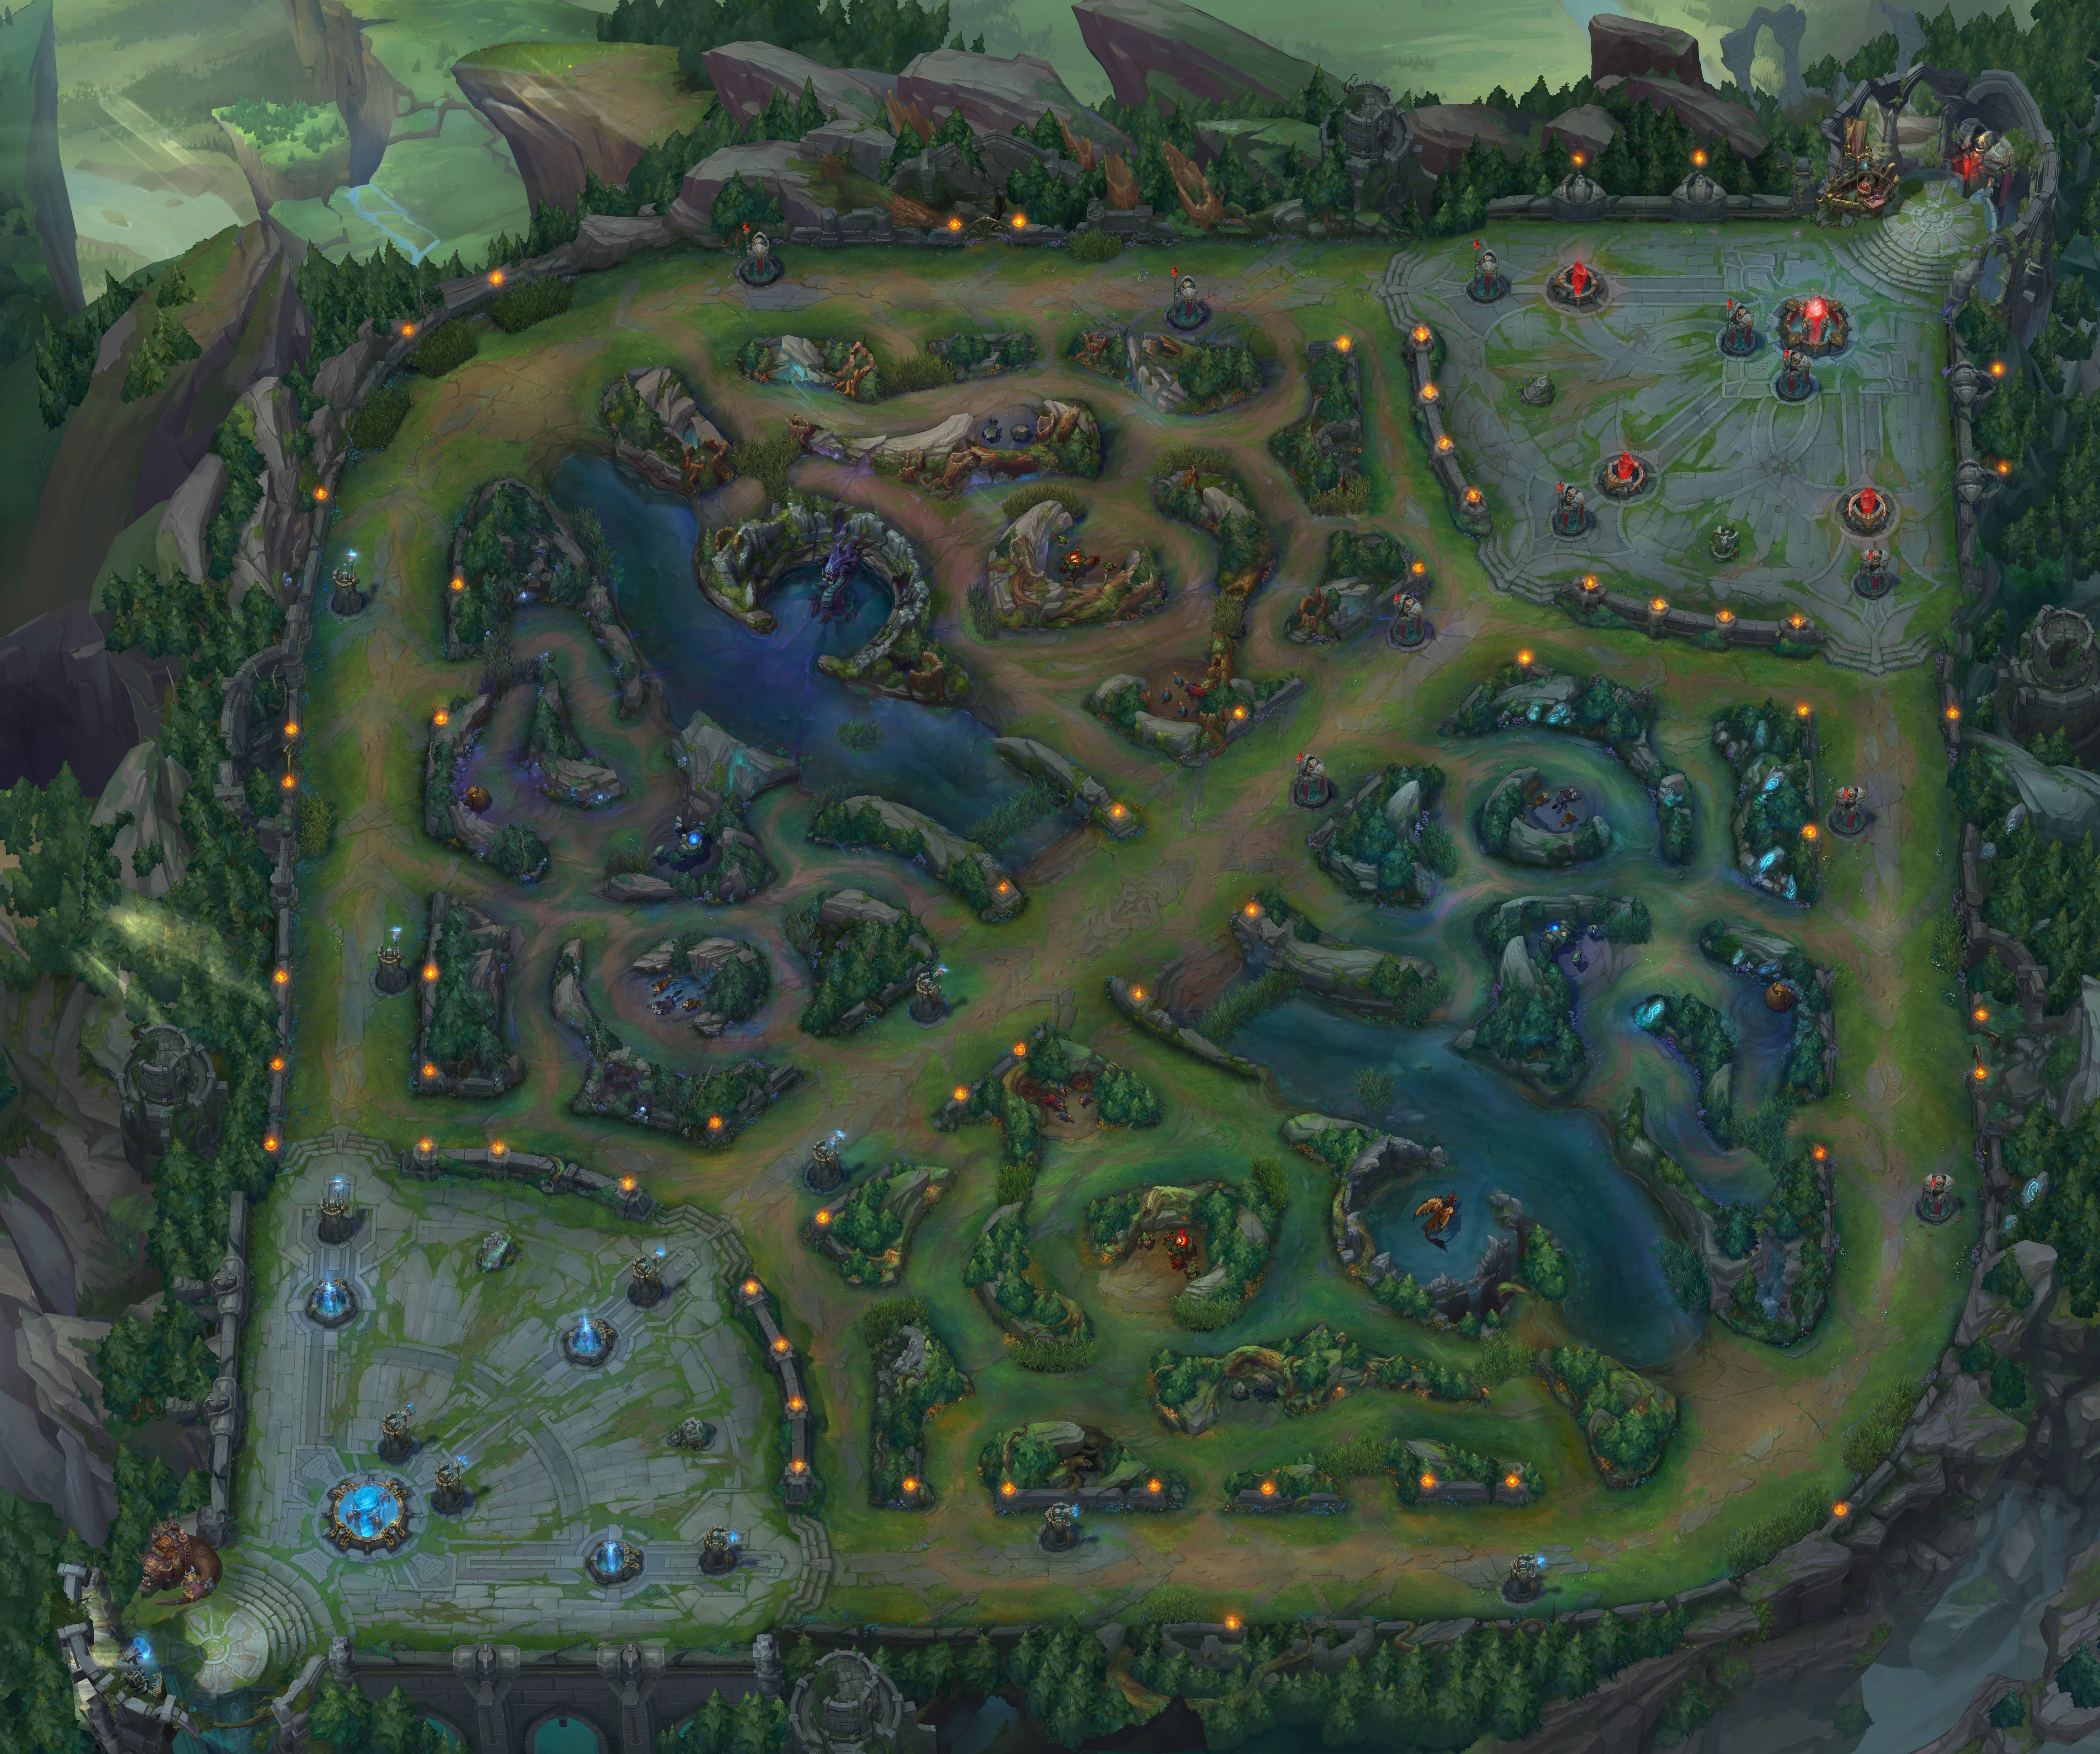 summoner's rift  league of legends inspired map conquest  - summonersriftreferenceimg m